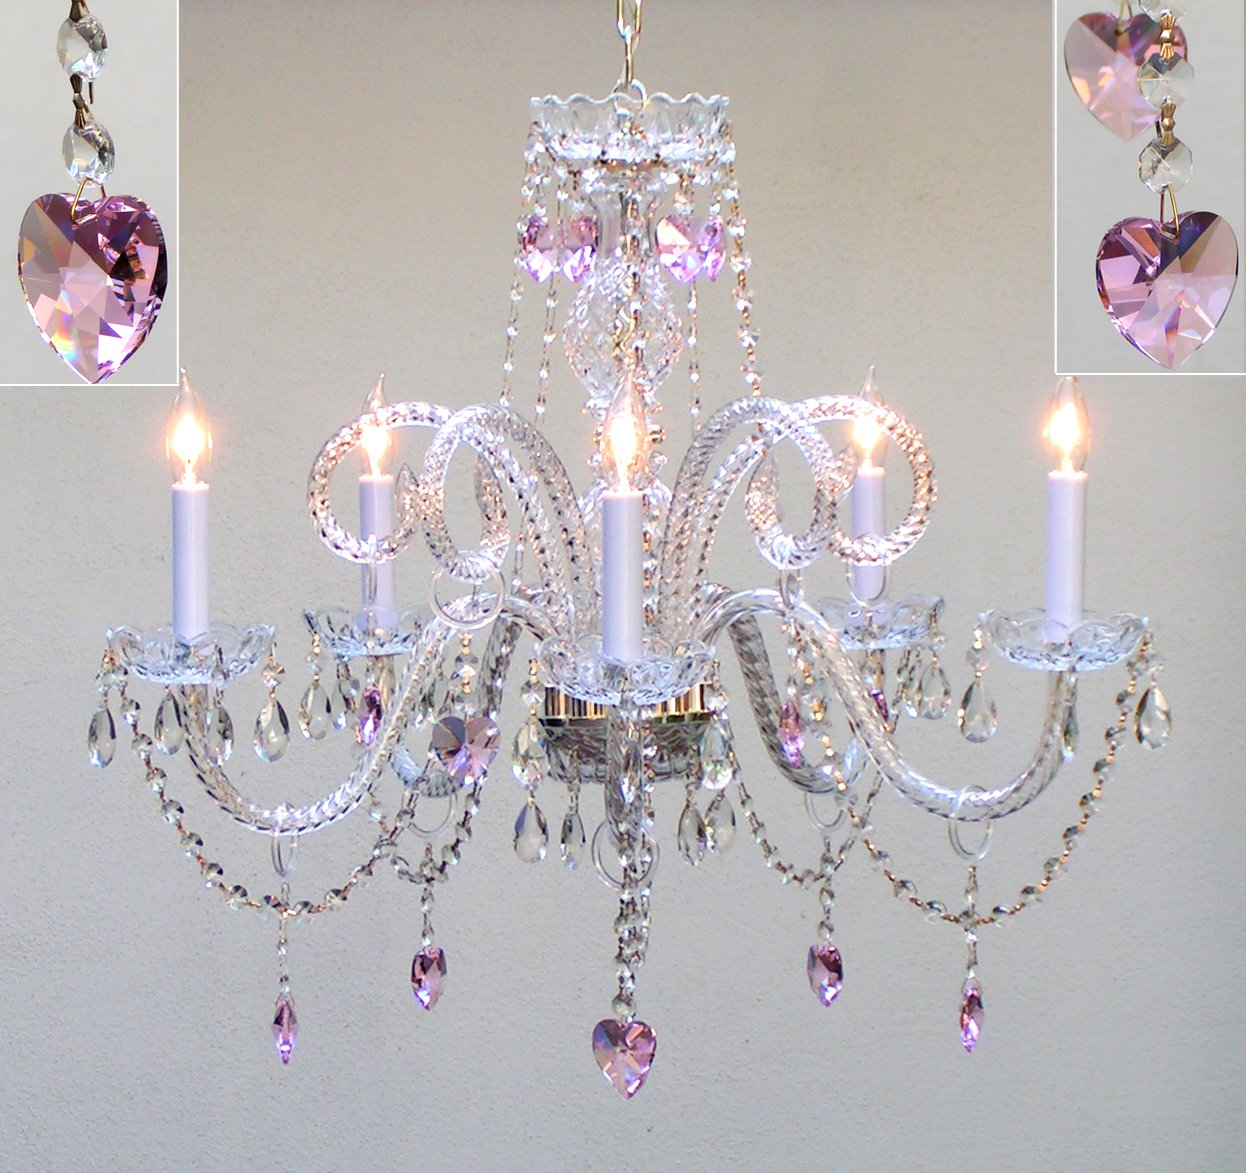 Chandelier lighting dressed with pink empress crystal tm hearts chandelier lighting dressed with pink empress crystal tm hearts h25 x w24 chandelier lighting pink chandelier for girls room amazon arubaitofo Choice Image